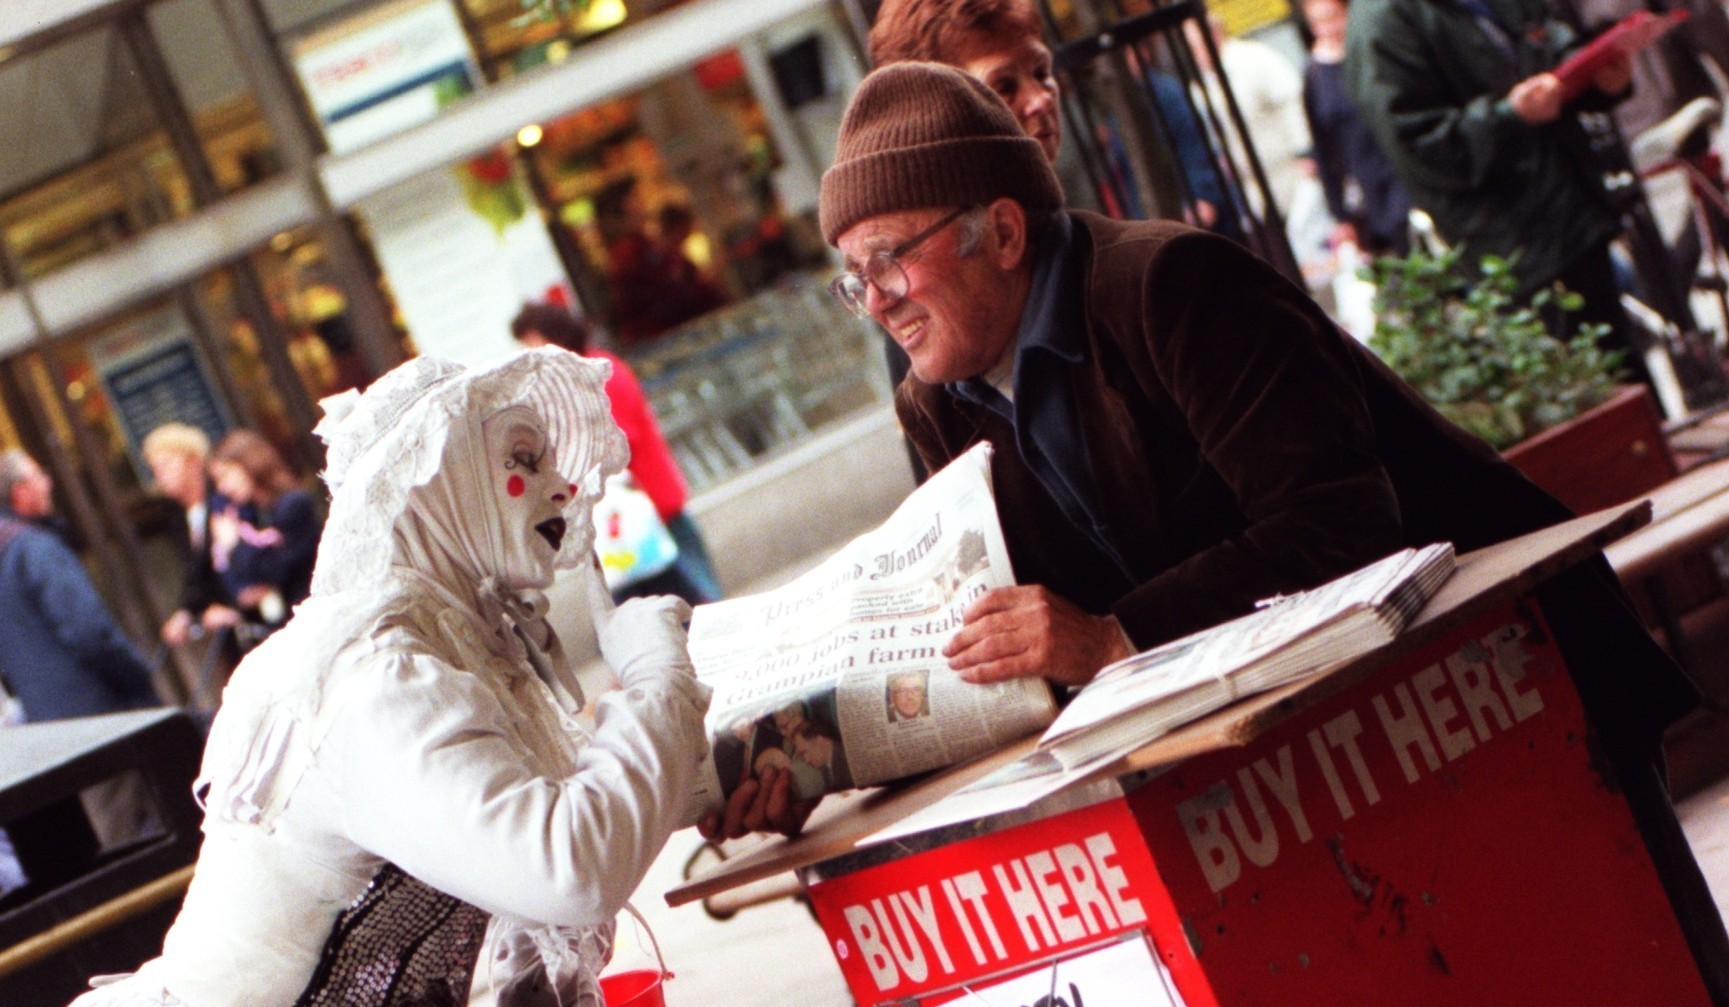 Mime artist 'Squeak' with vendor David Thomson in days gone by